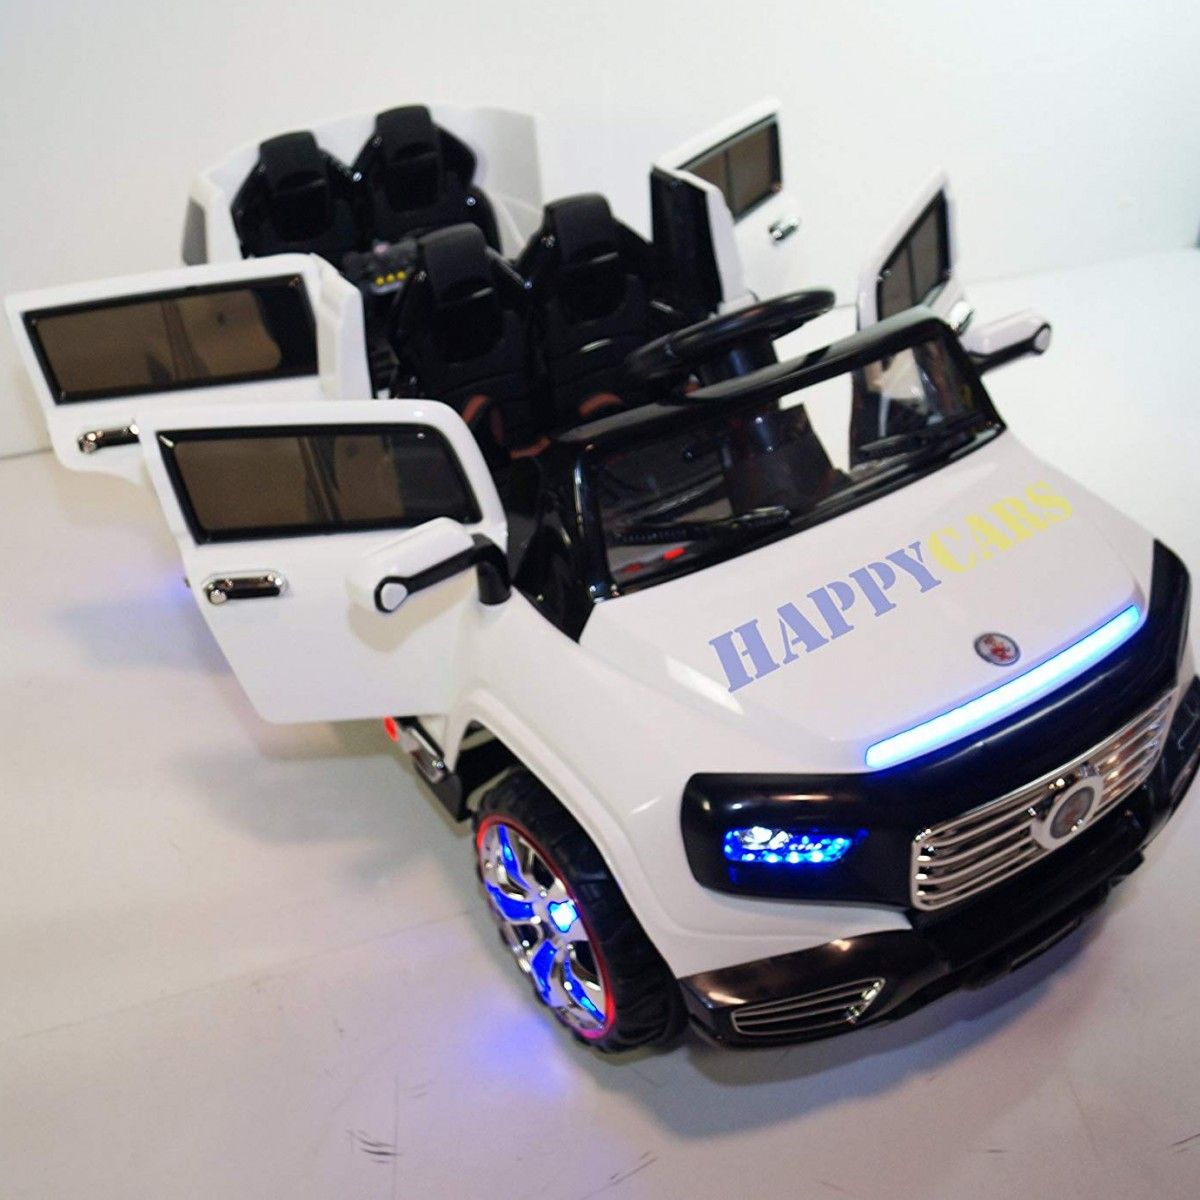 Electric Cars For Kids 4 Seater Best Of Children Ride On Sx1528 White 4 Doors Kids Car Baby In 2020 Kids Ride On Toys Toy Cars For Kids Bmw Electric Car